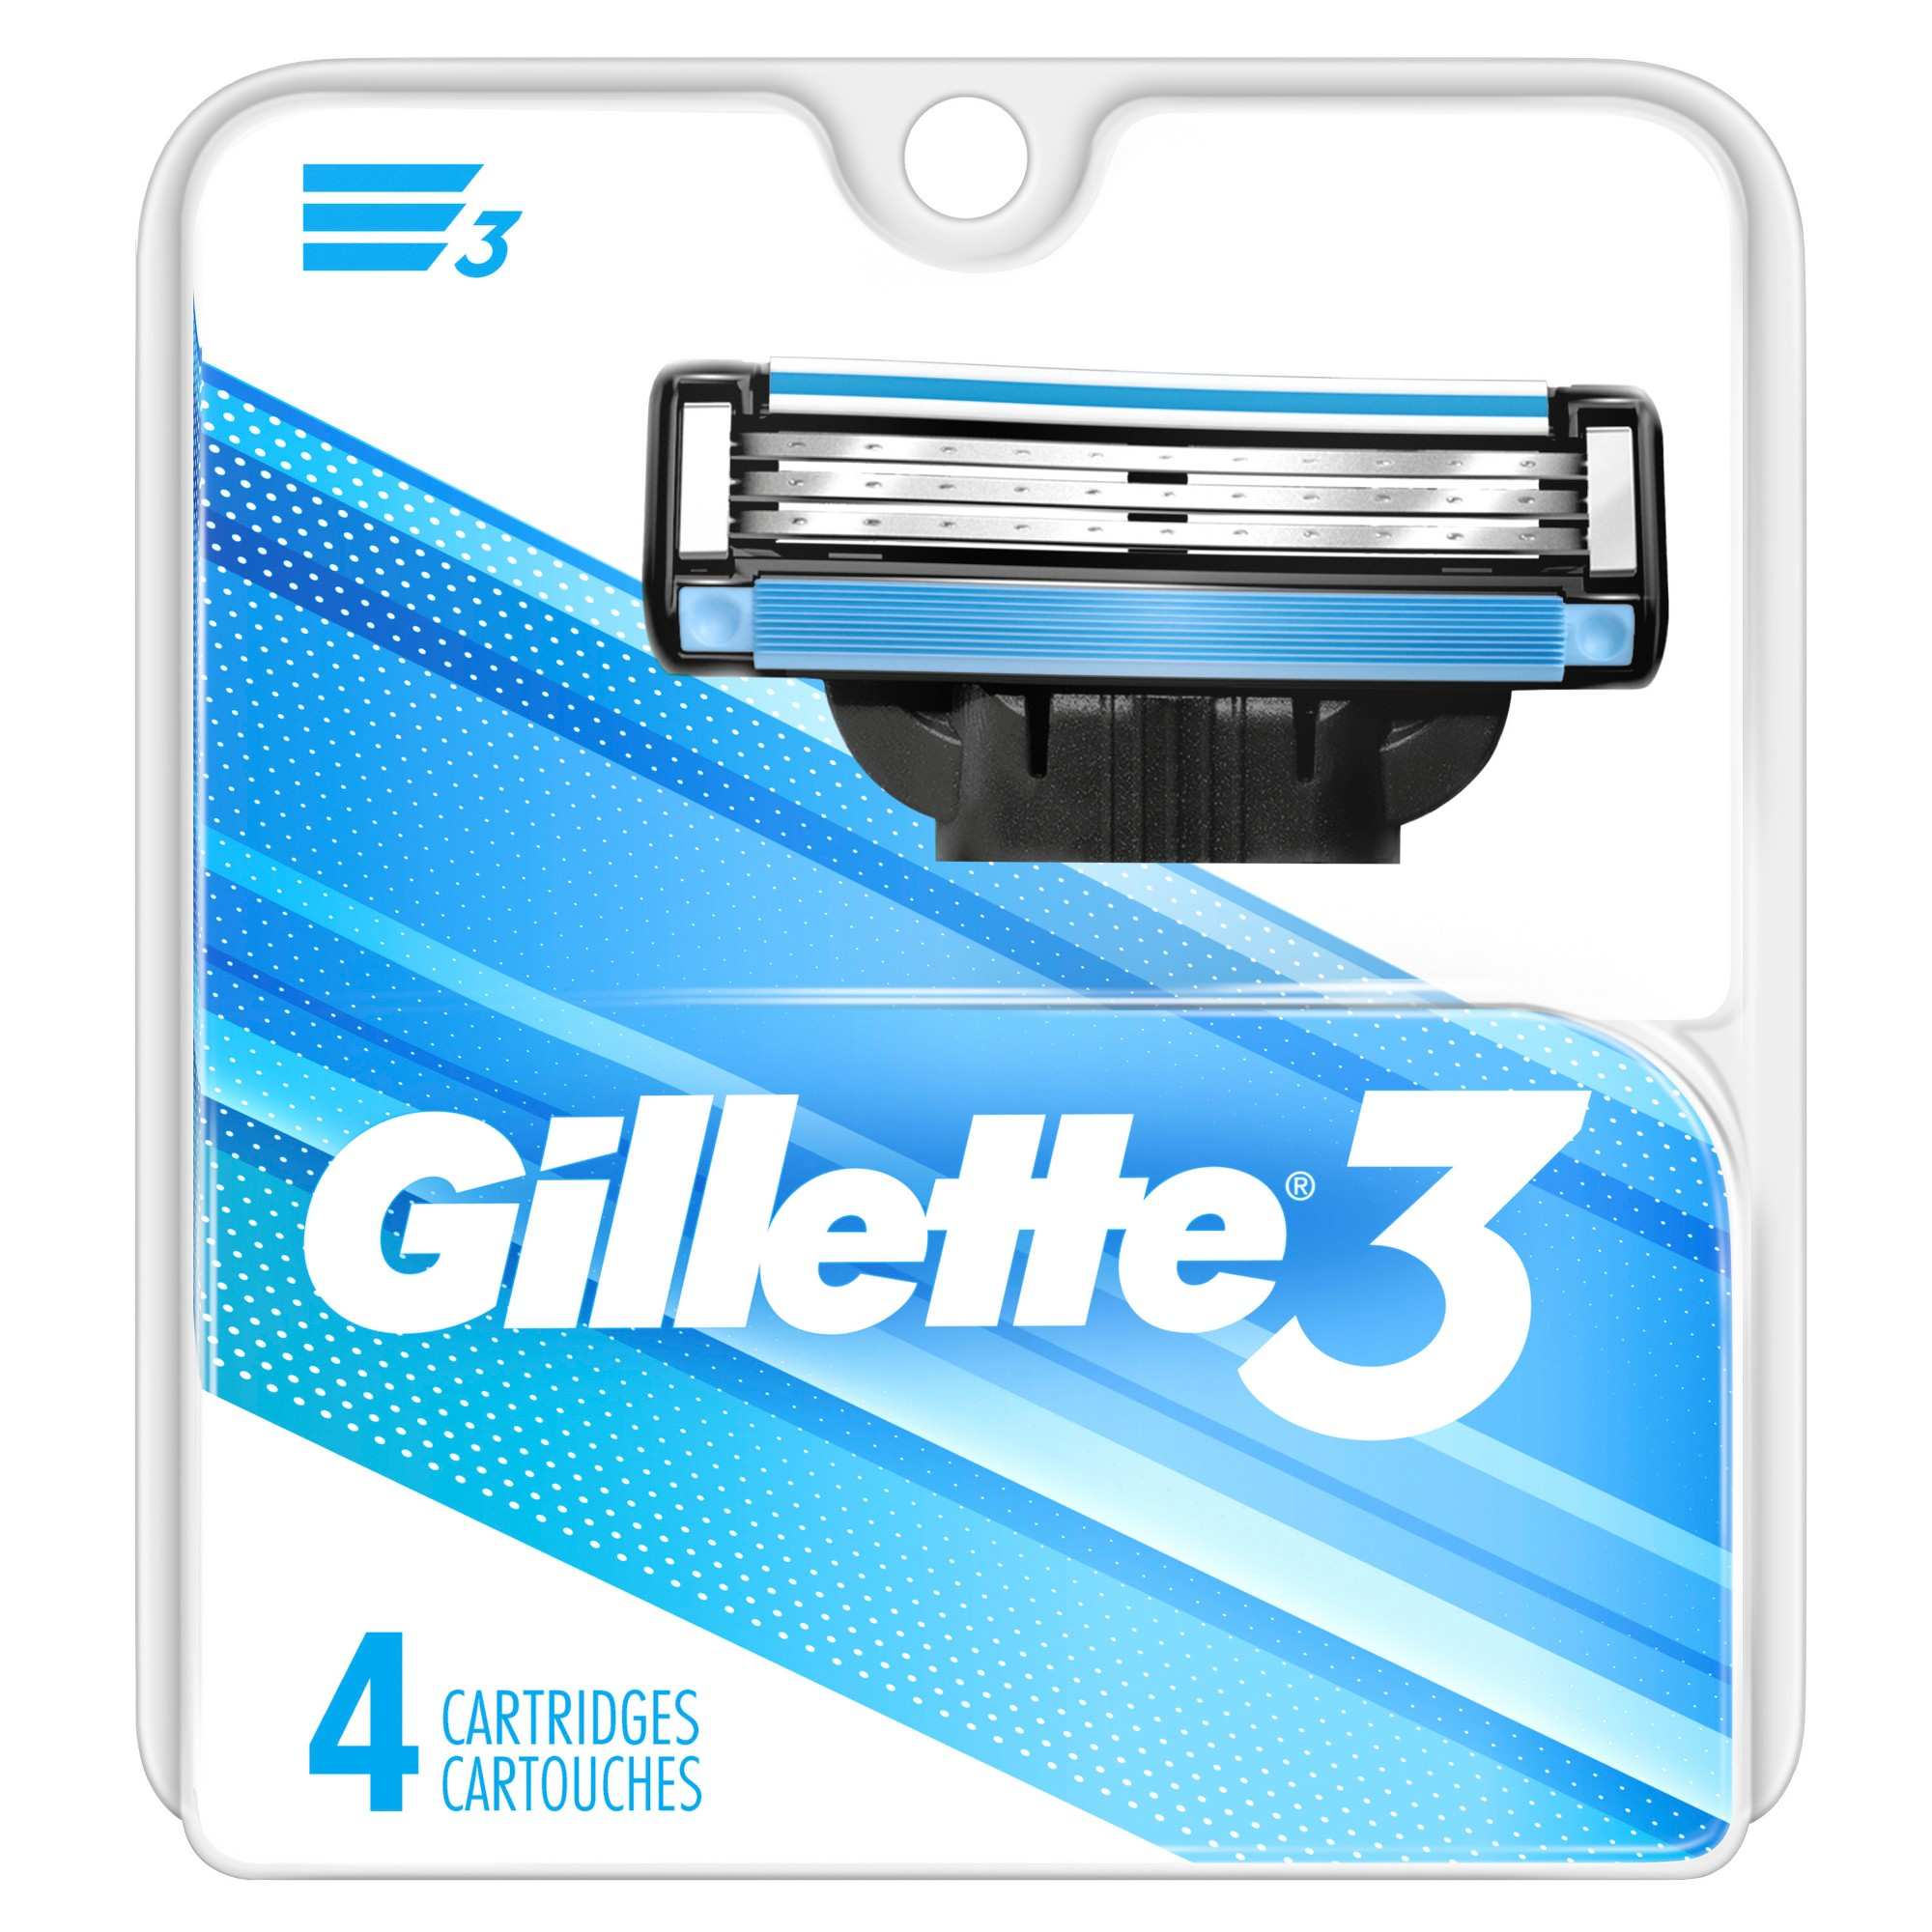 Gillette 3 Blade Men's Razor Blade Refills - 4ct in 2019